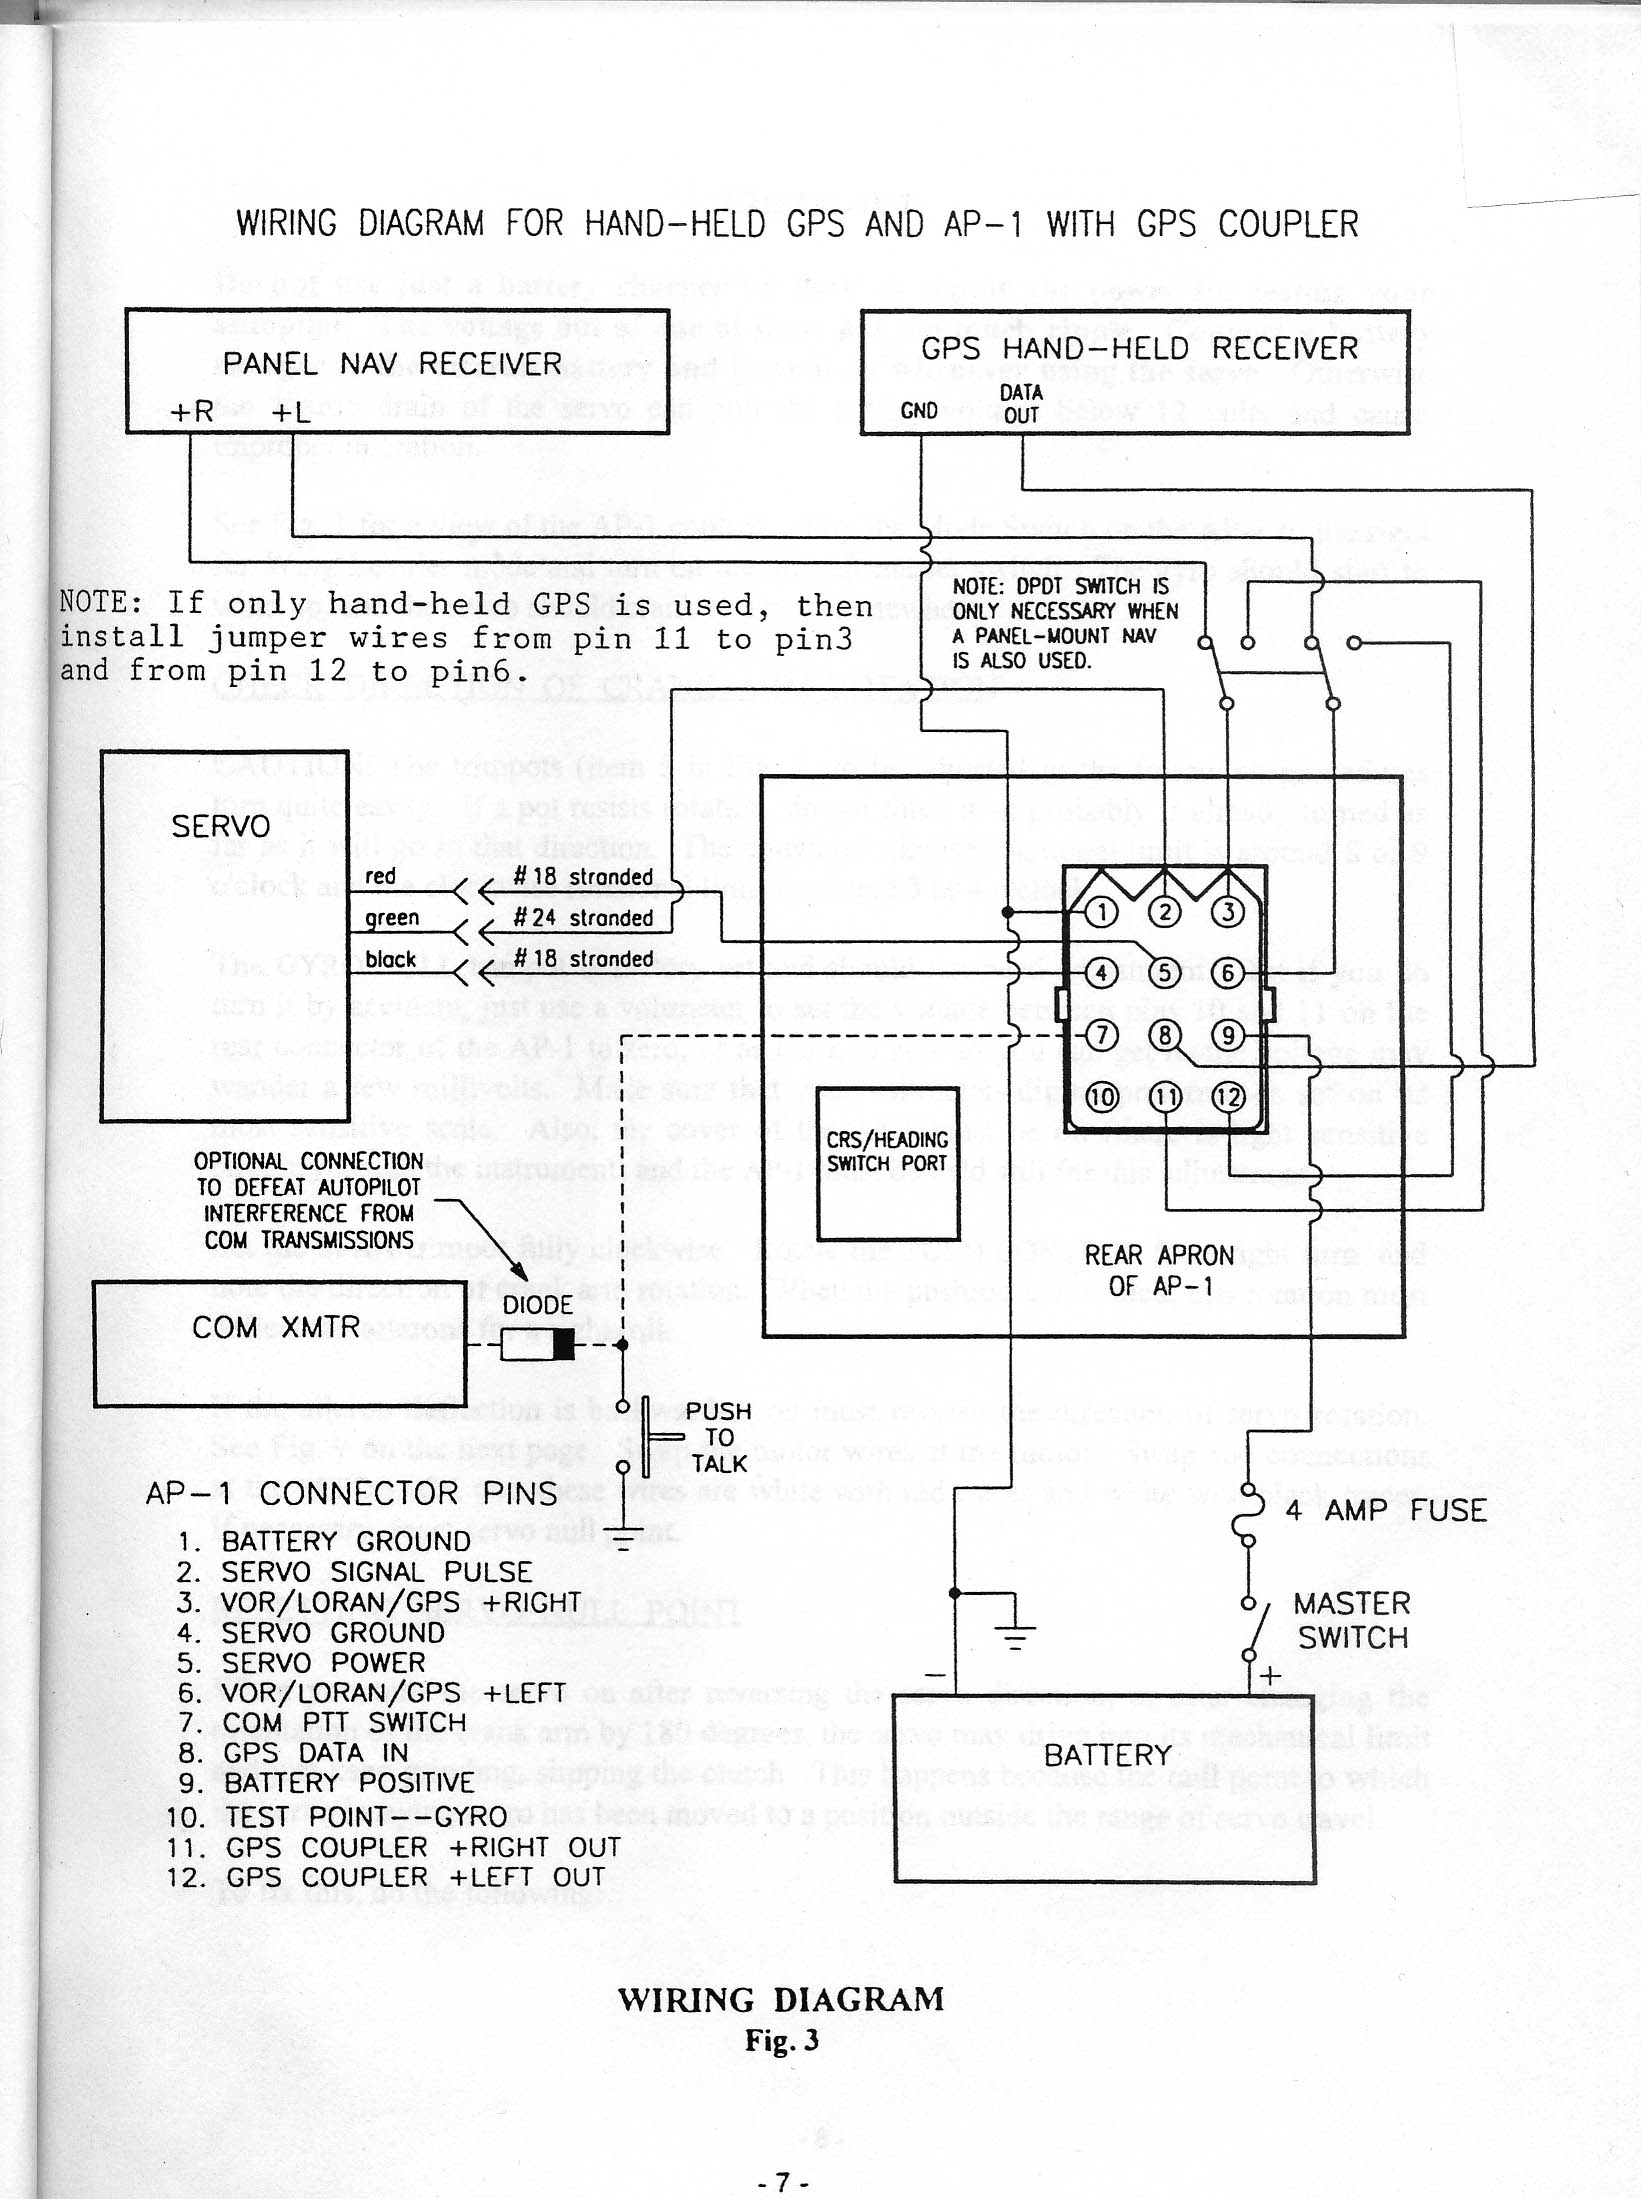 diagram king ky 92 wiring diagram automotive wiring diagrams \u2022 wiring king ka 134 audio panel wiring diagram at suagrazia.org